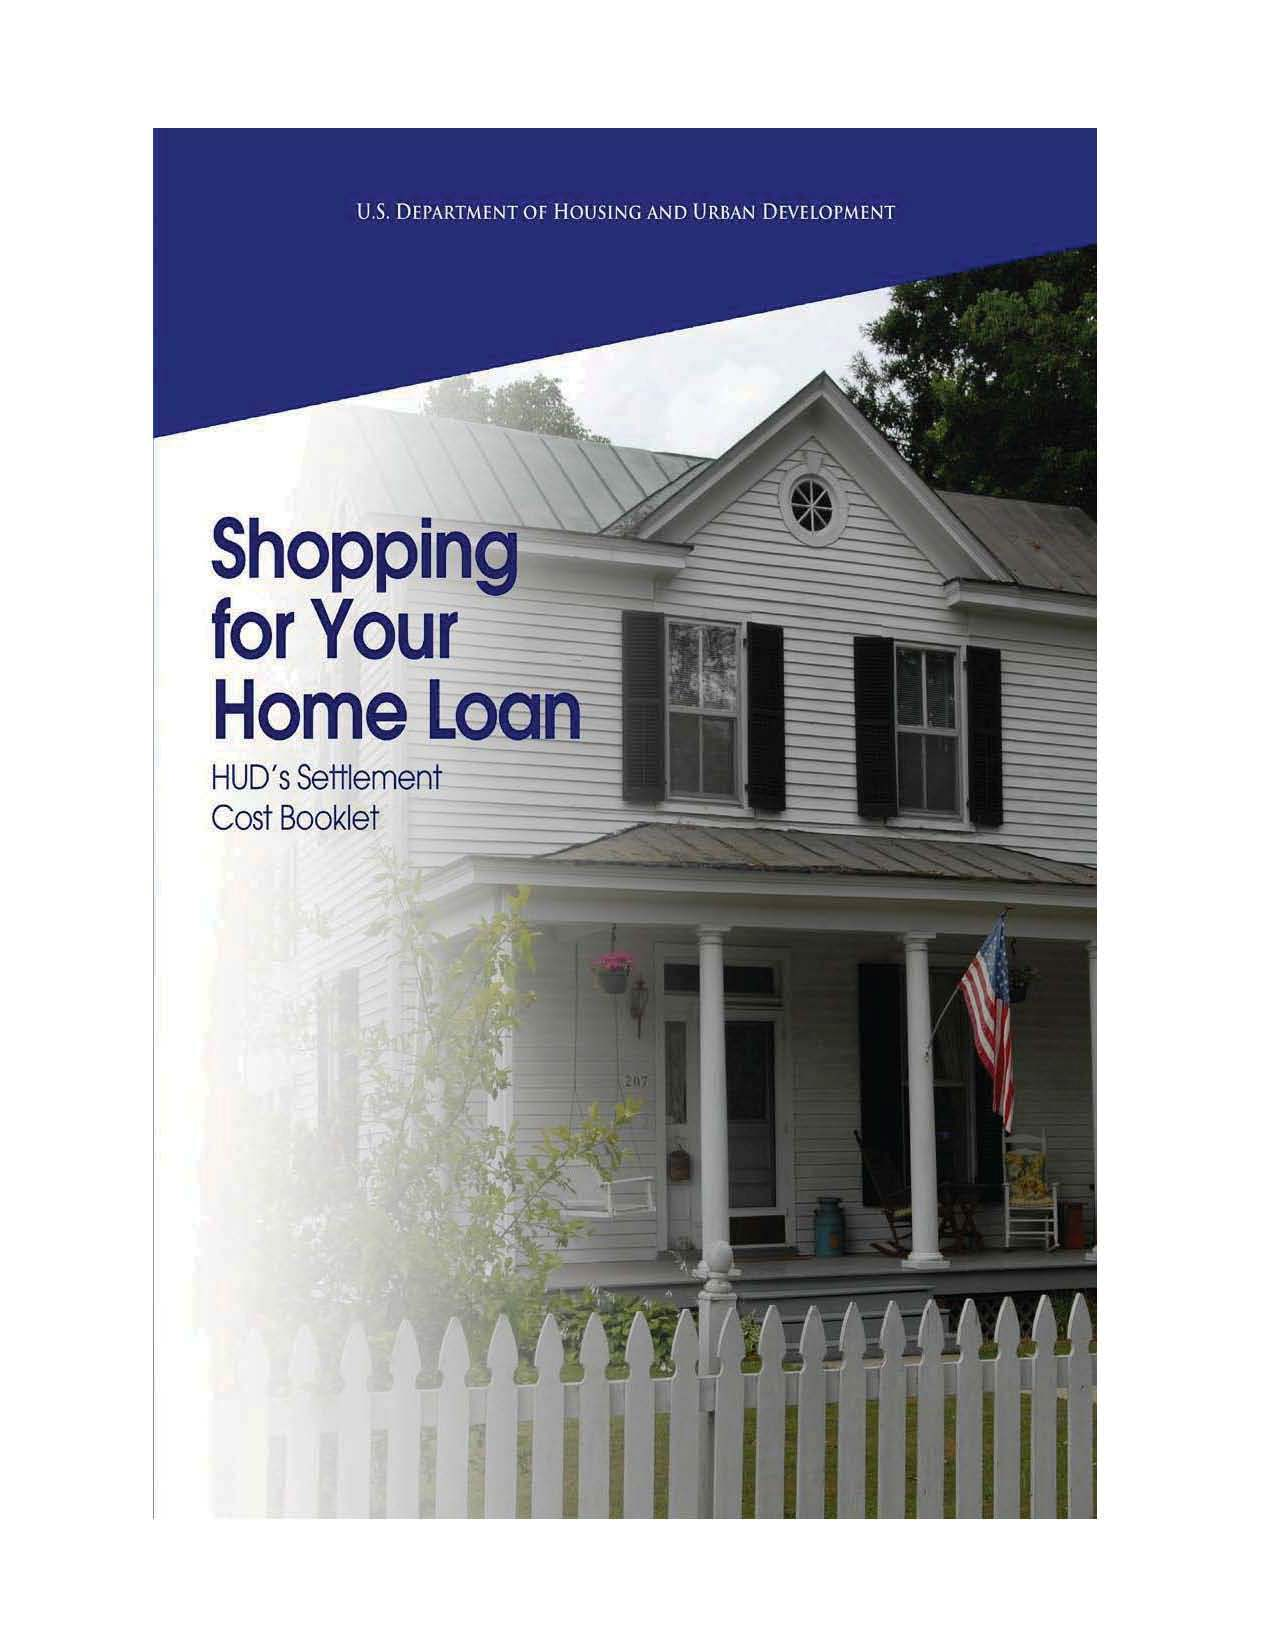 Shopping For Your Home Loan  Hud's Settlement Cost. Roof Truss Manufacturers Locum Physician Jobs. Phlebotomy Certification Orlando Fl. Cracked Heat Exchanger Repair Cost. Bureau Of Insurance Virginia. Marijuana For Arthritis Christchurch Nz Hotel. Riverdale Self Storage Audi Tt Coupe Interior. Scotialife Travel Insurance Oauth 2 0 Server. Lemon Law California Used Car